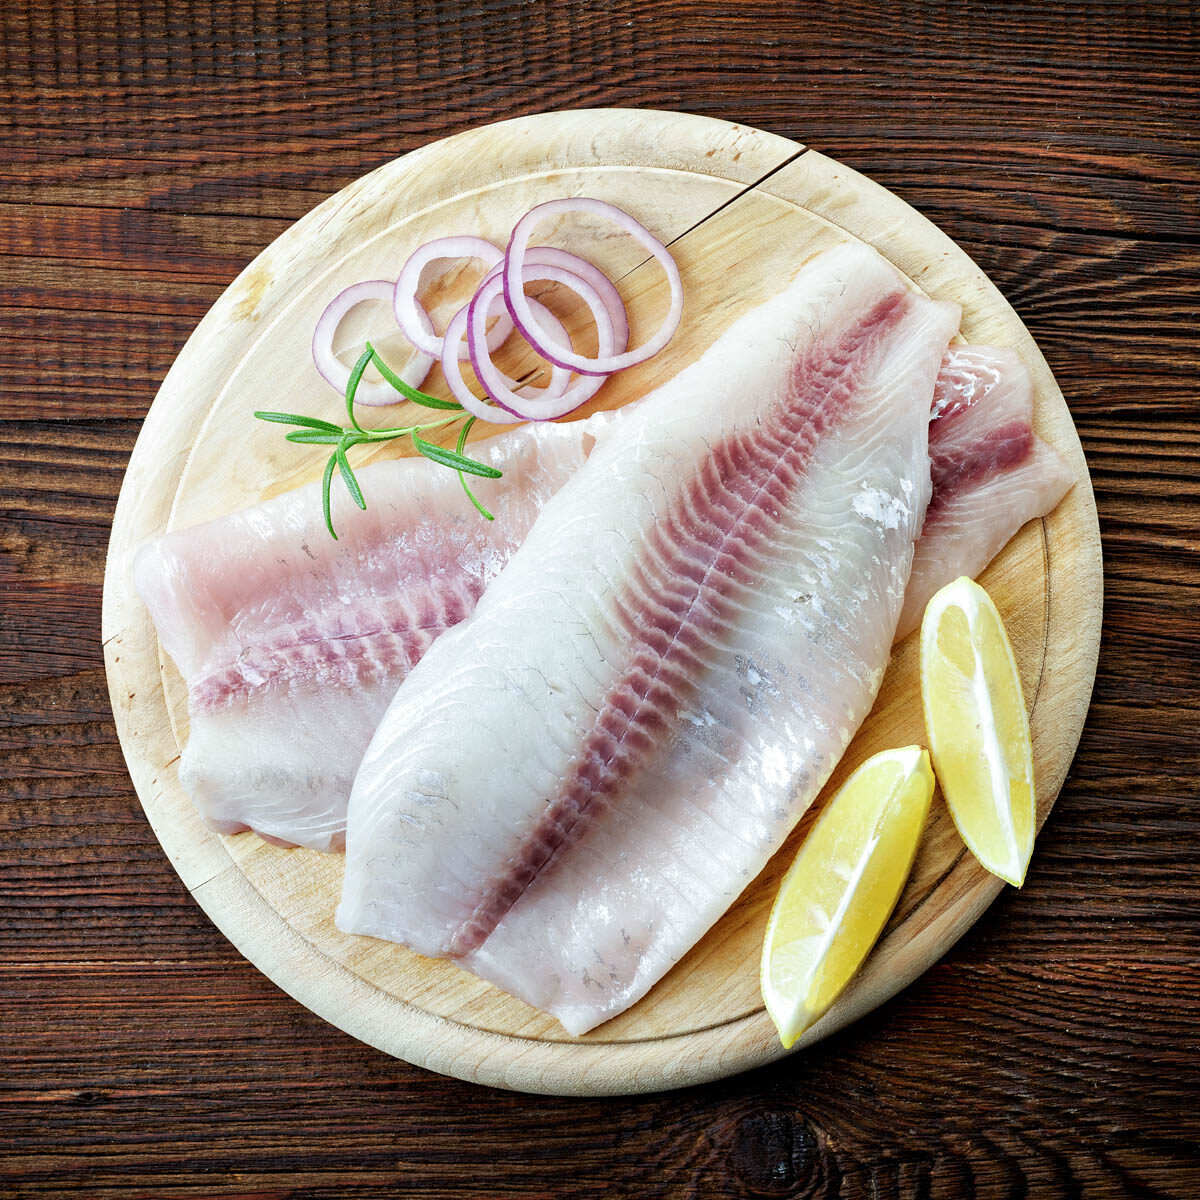 3 fresh fish filets on a round cutting board with raw red onion rings and lemon wedges.